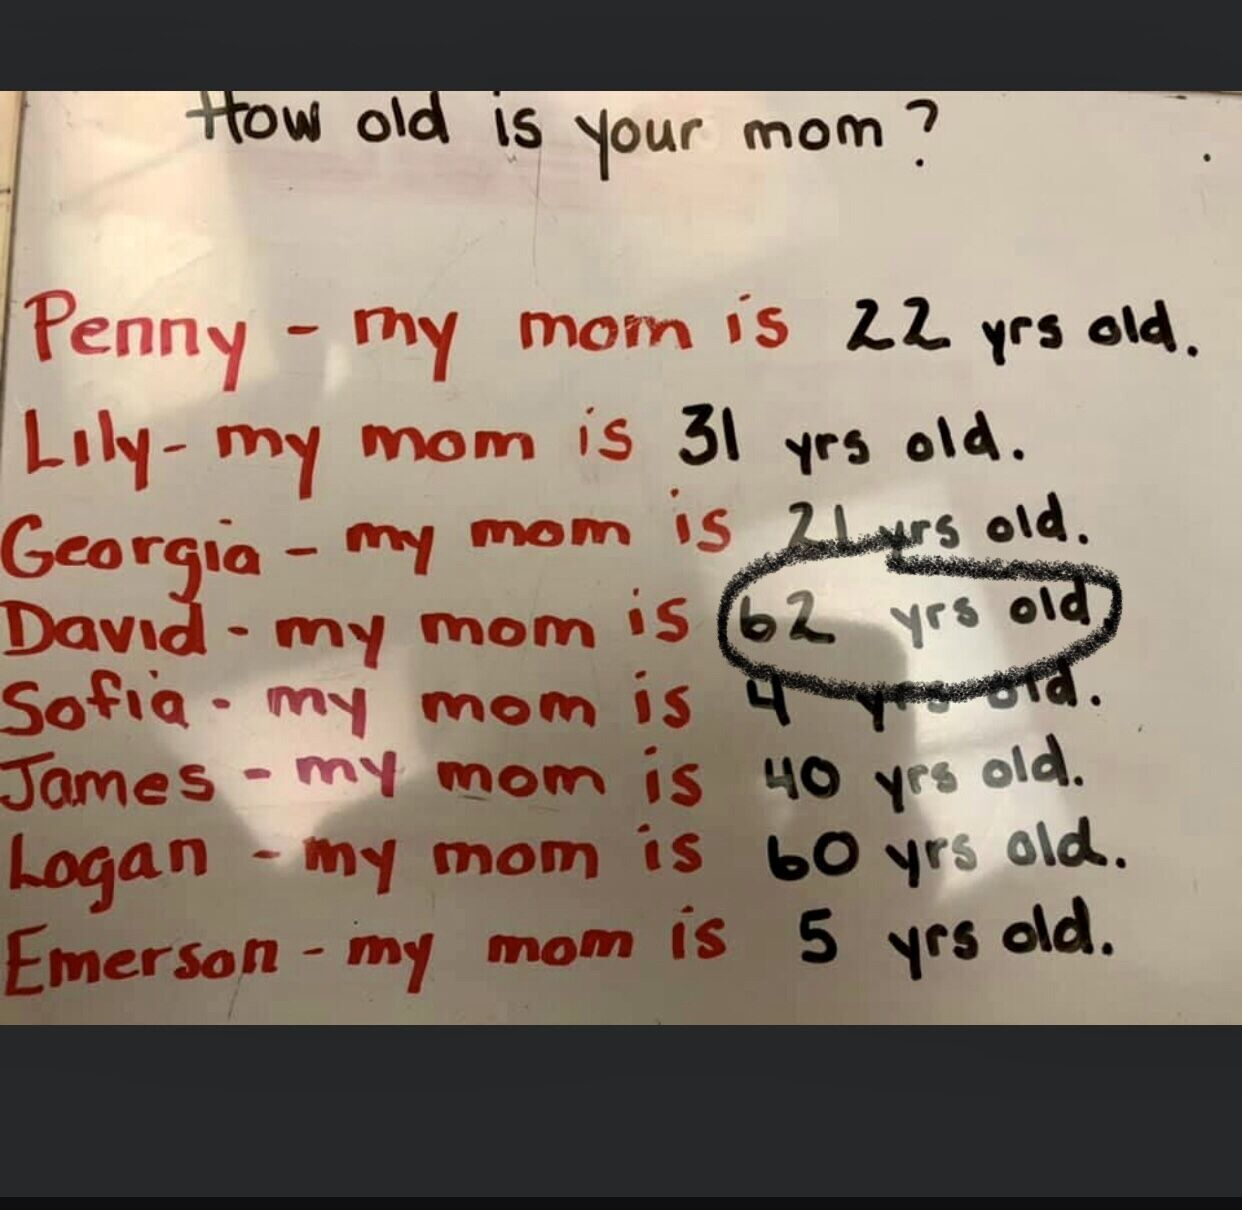 How old is your mom?